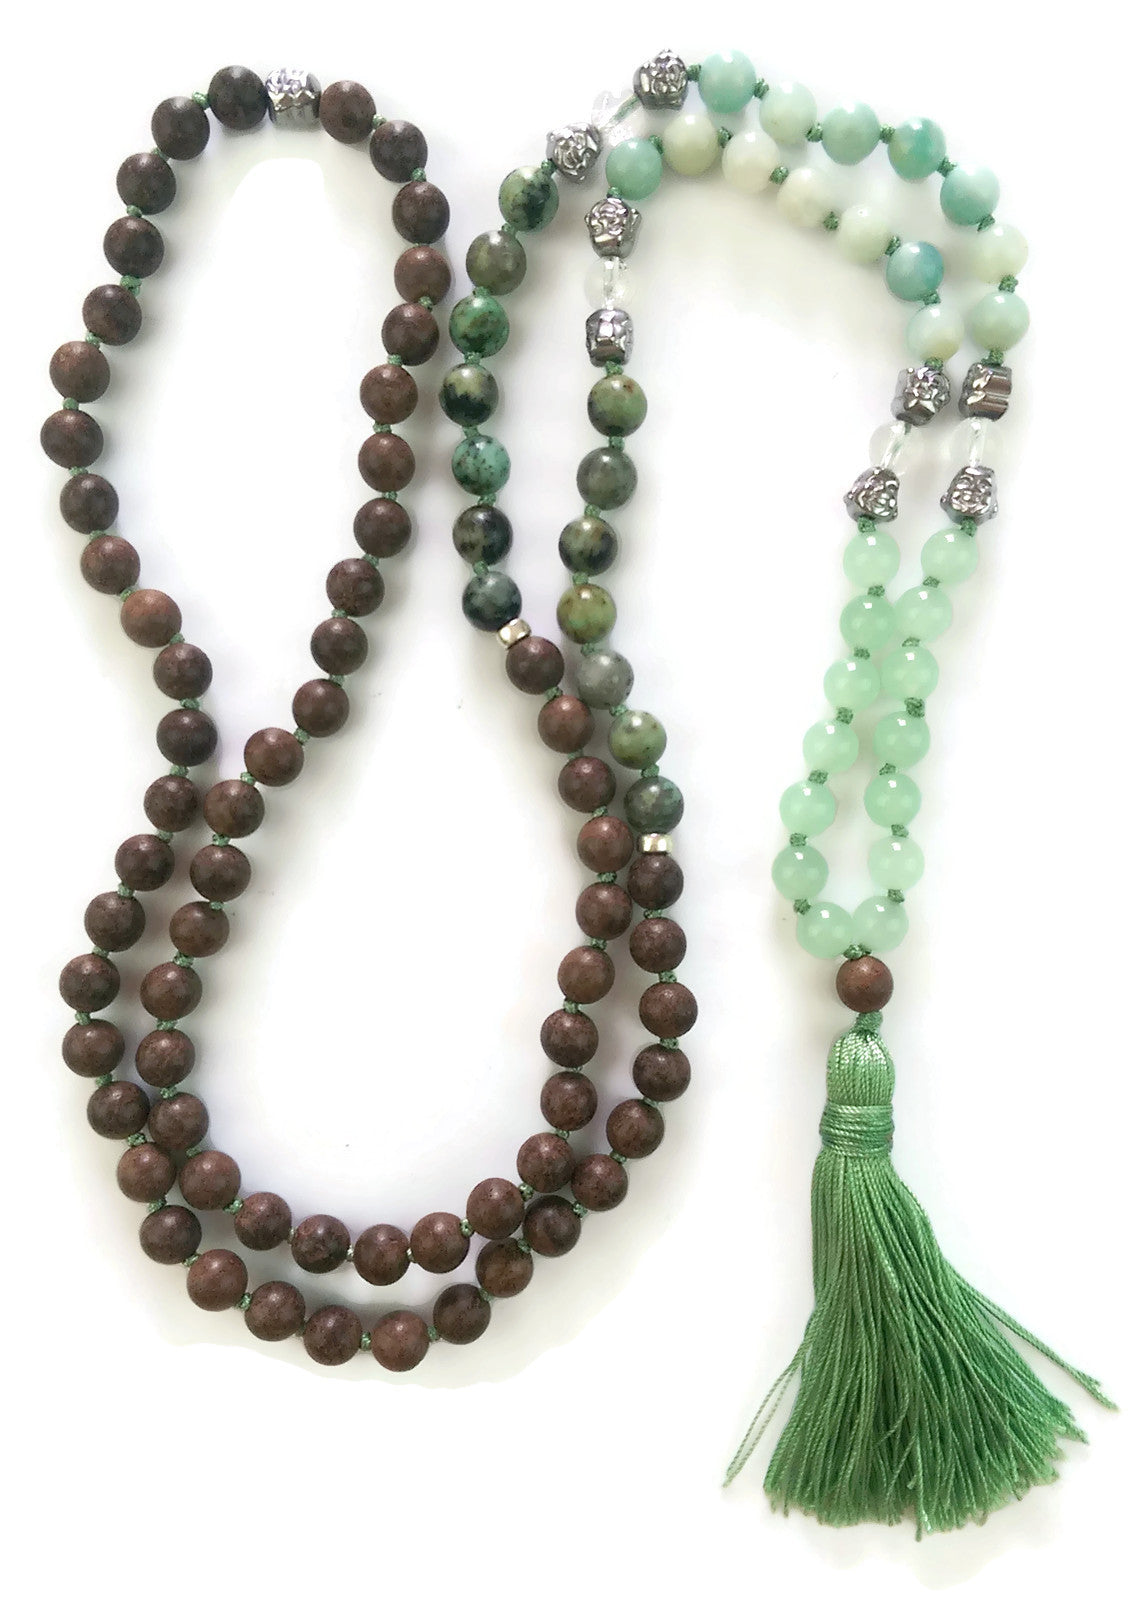 Fresh Start Chakra Collection 8mm Aventurine Amazonite African Turquoise Agarwood Traditional Knotted 108 Meditation Mala Necklace Heart